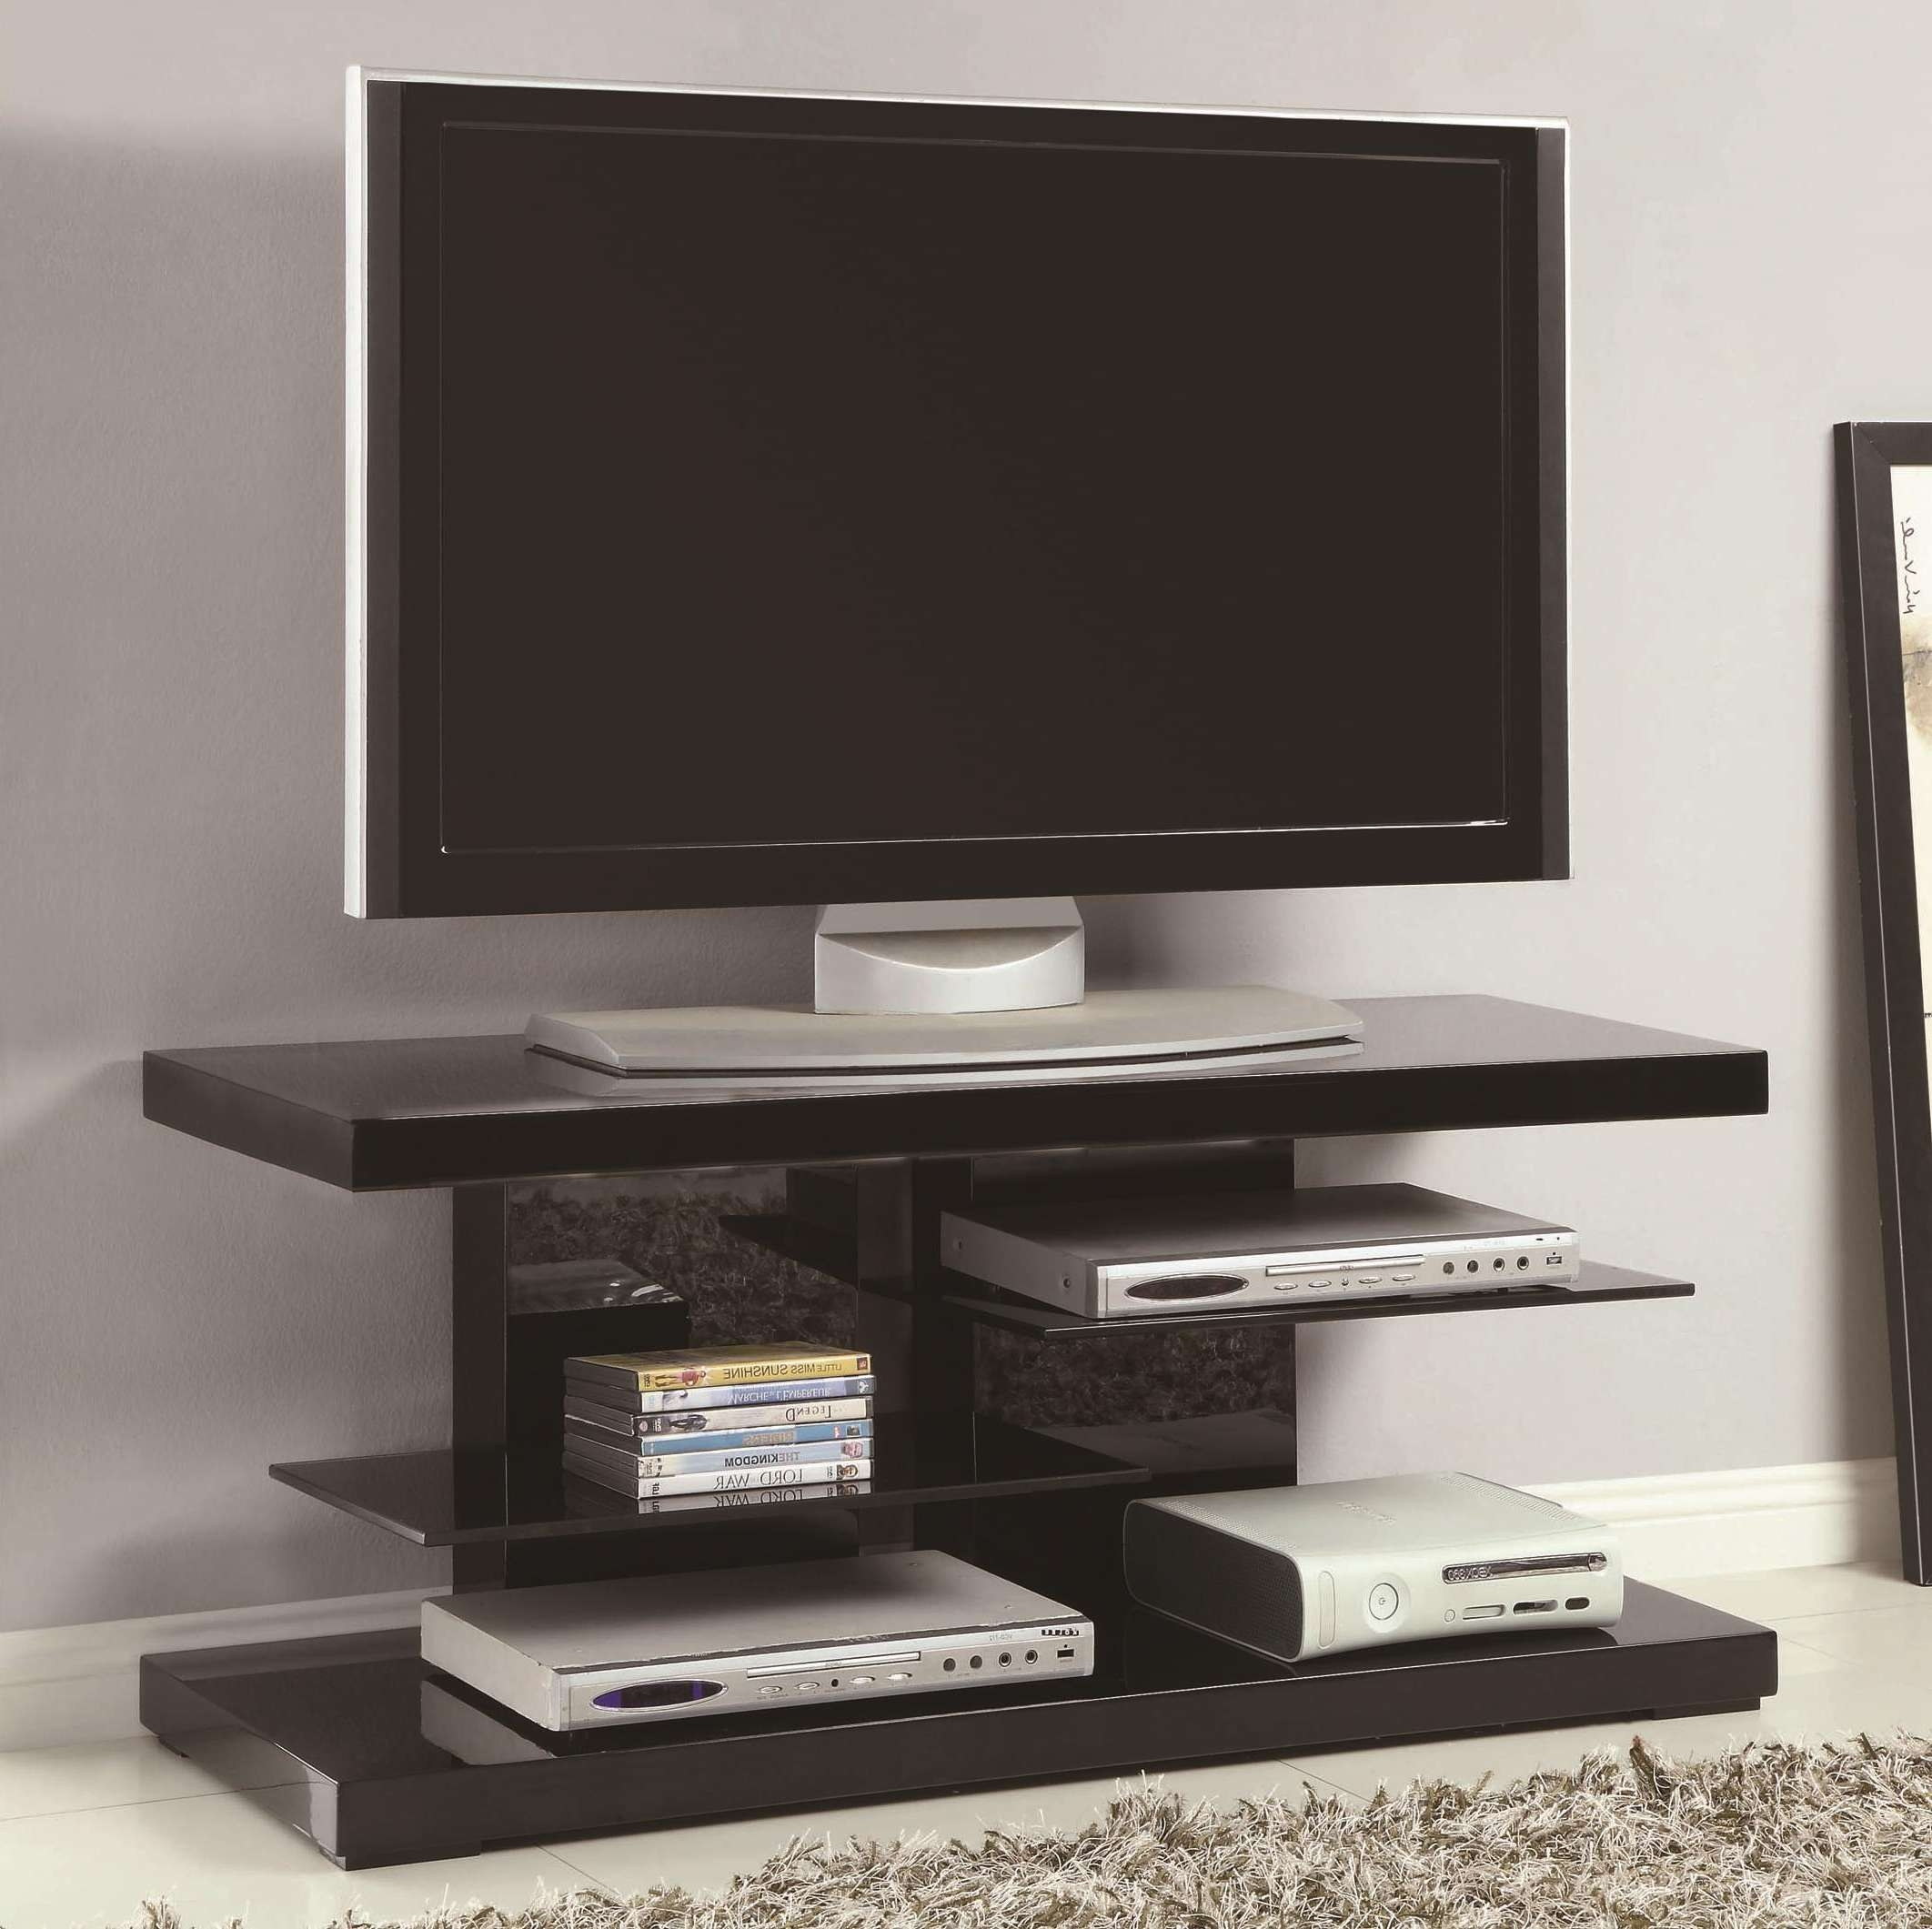 Best Contemporary Tv Console For Flat Screens | All Contemporary Inside Contemporary Tv Stands For Flat Screens (View 11 of 15)